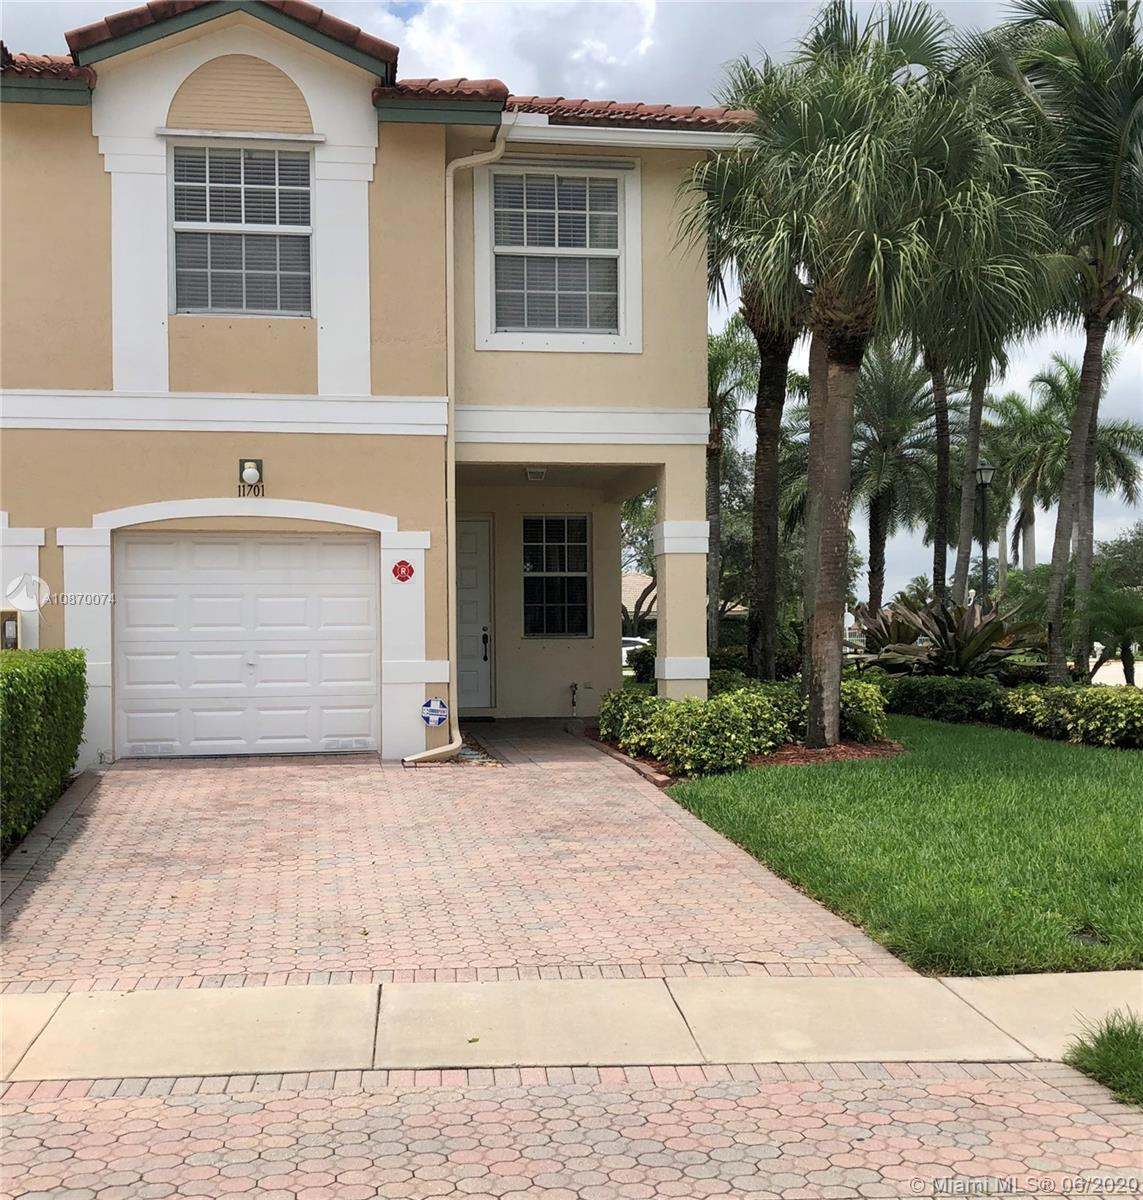 Very well maintained, 4 bedrooms, 2.5 Bathrooms, end unit Town-home, in Coral Springs, FL. Pelican Pointe is a townhouse community located within Wyndham Lakes, easy access to the Sawgrass Expressway, and centrally located for shopping and dining. Schedule your showing today on Showing Time.